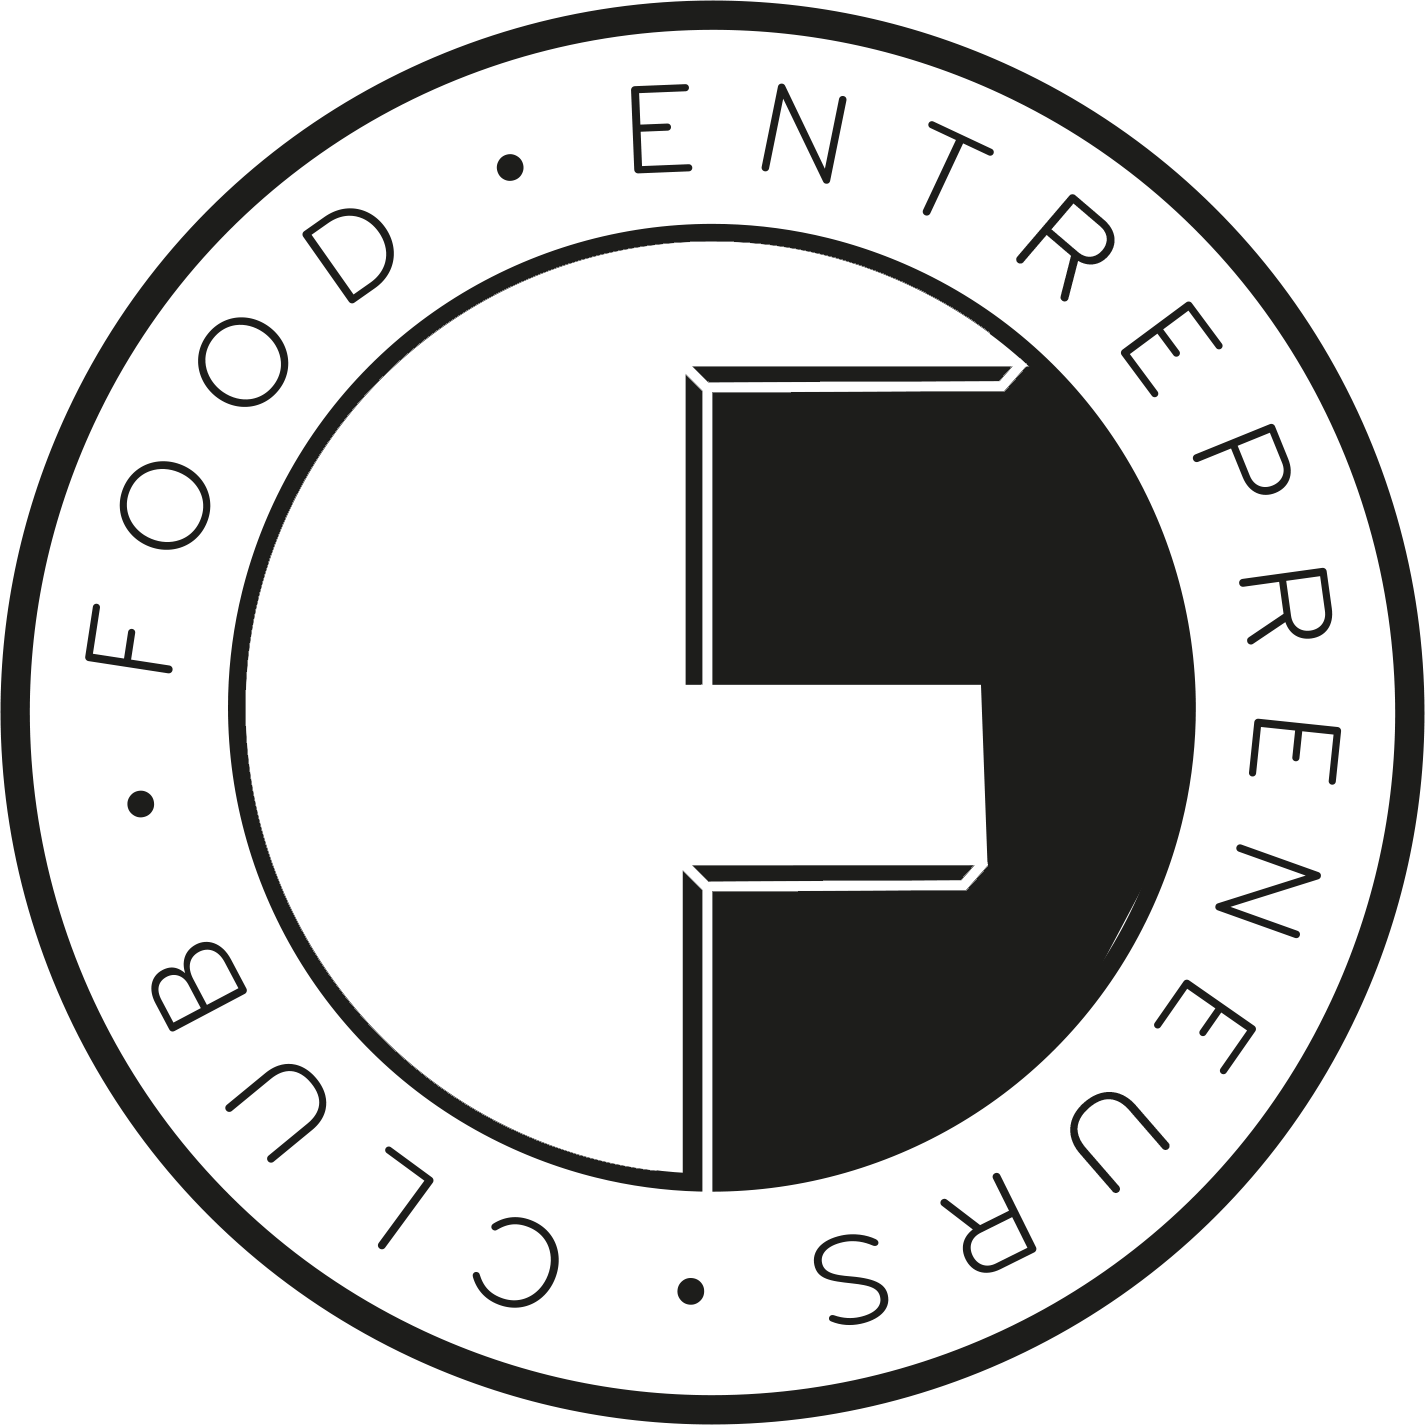 Food Entrepreneurs Club